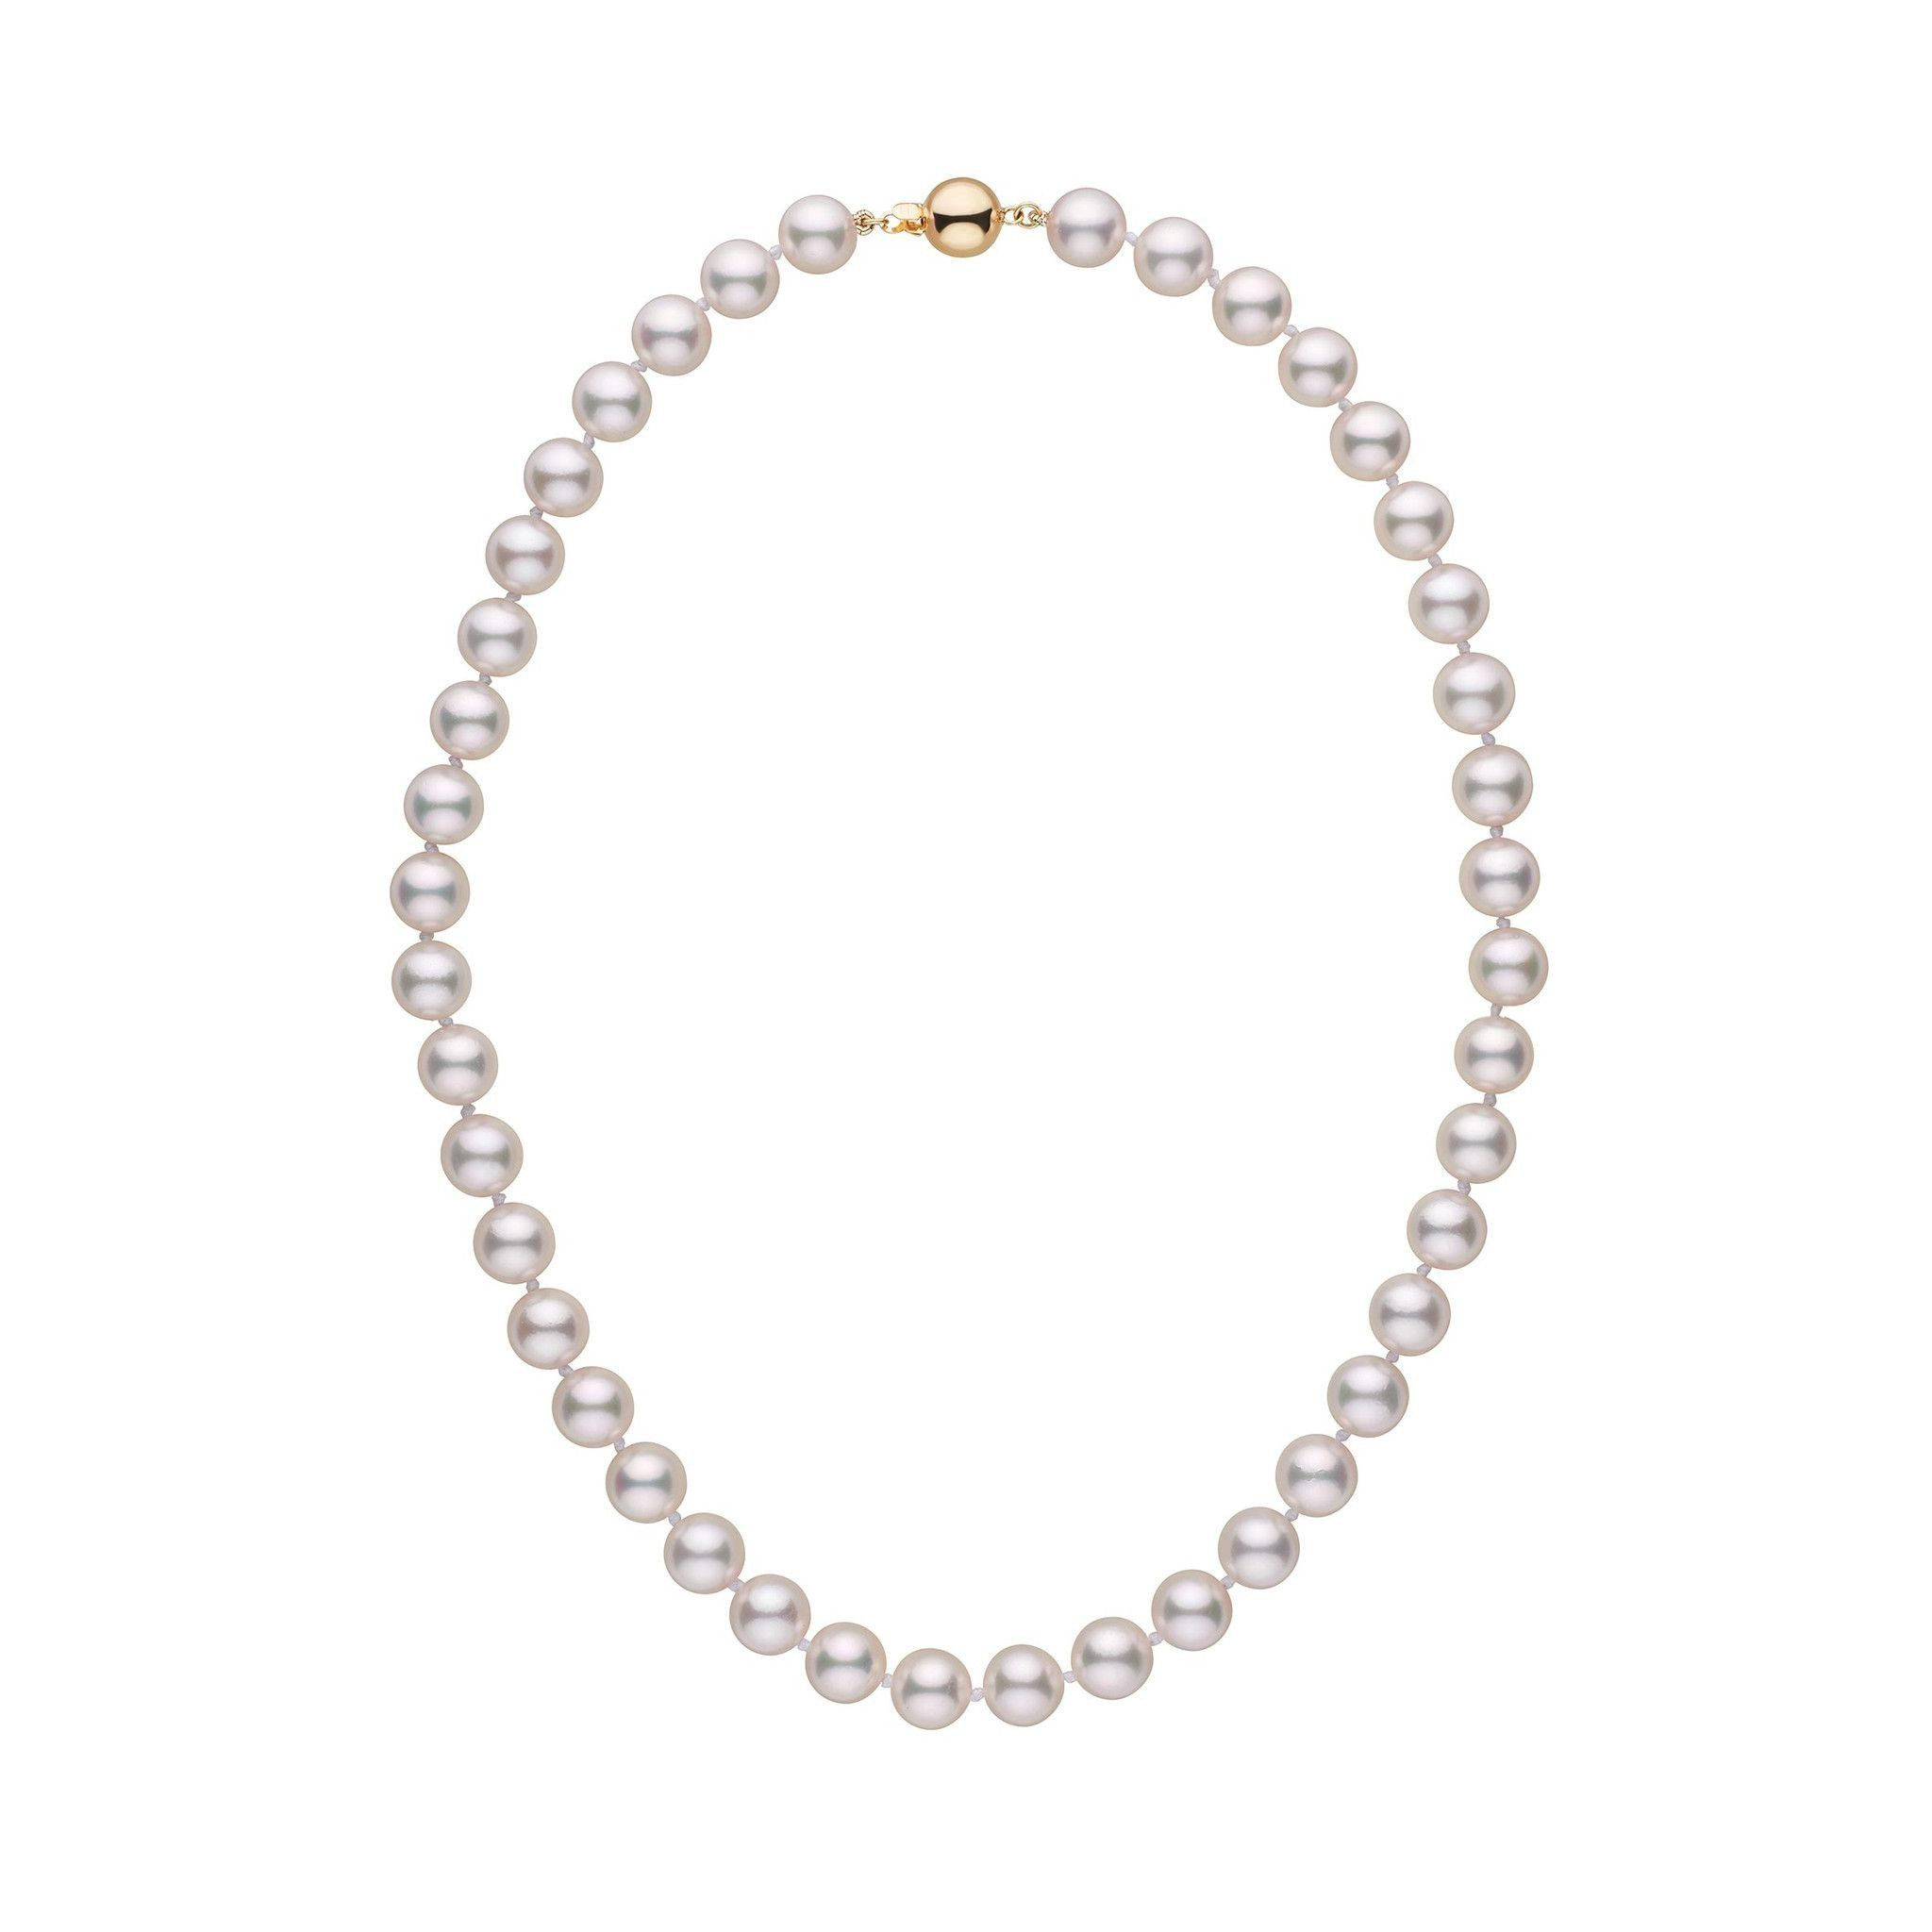 8.5-9.0 mm 16 inch AA+ White Akoya Pearl Necklace